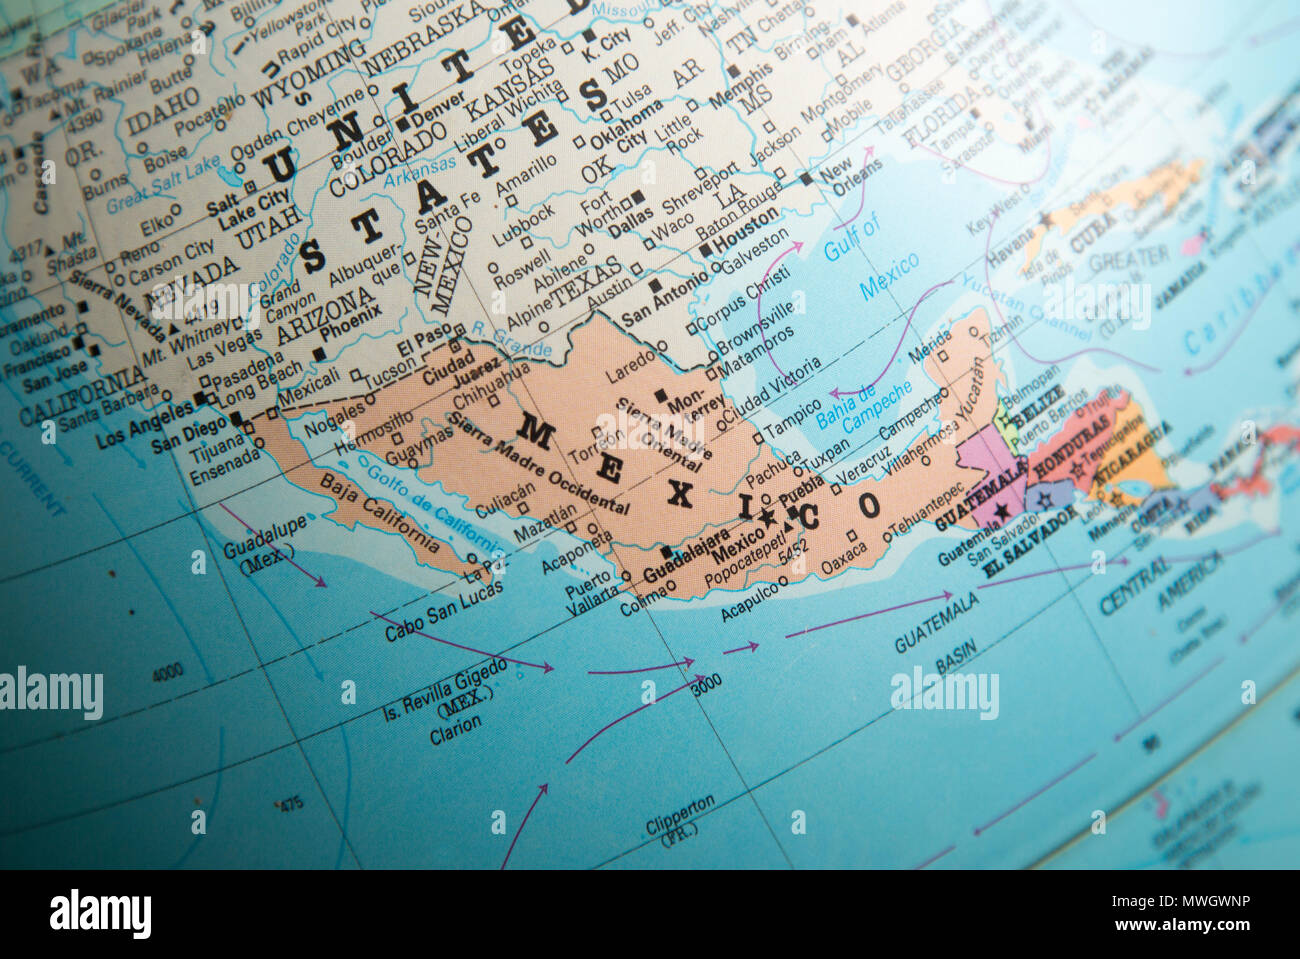 Mexico map political map stock photos mexico map political map north america map on a globe focused on mexico border with united states of america freerunsca Image collections